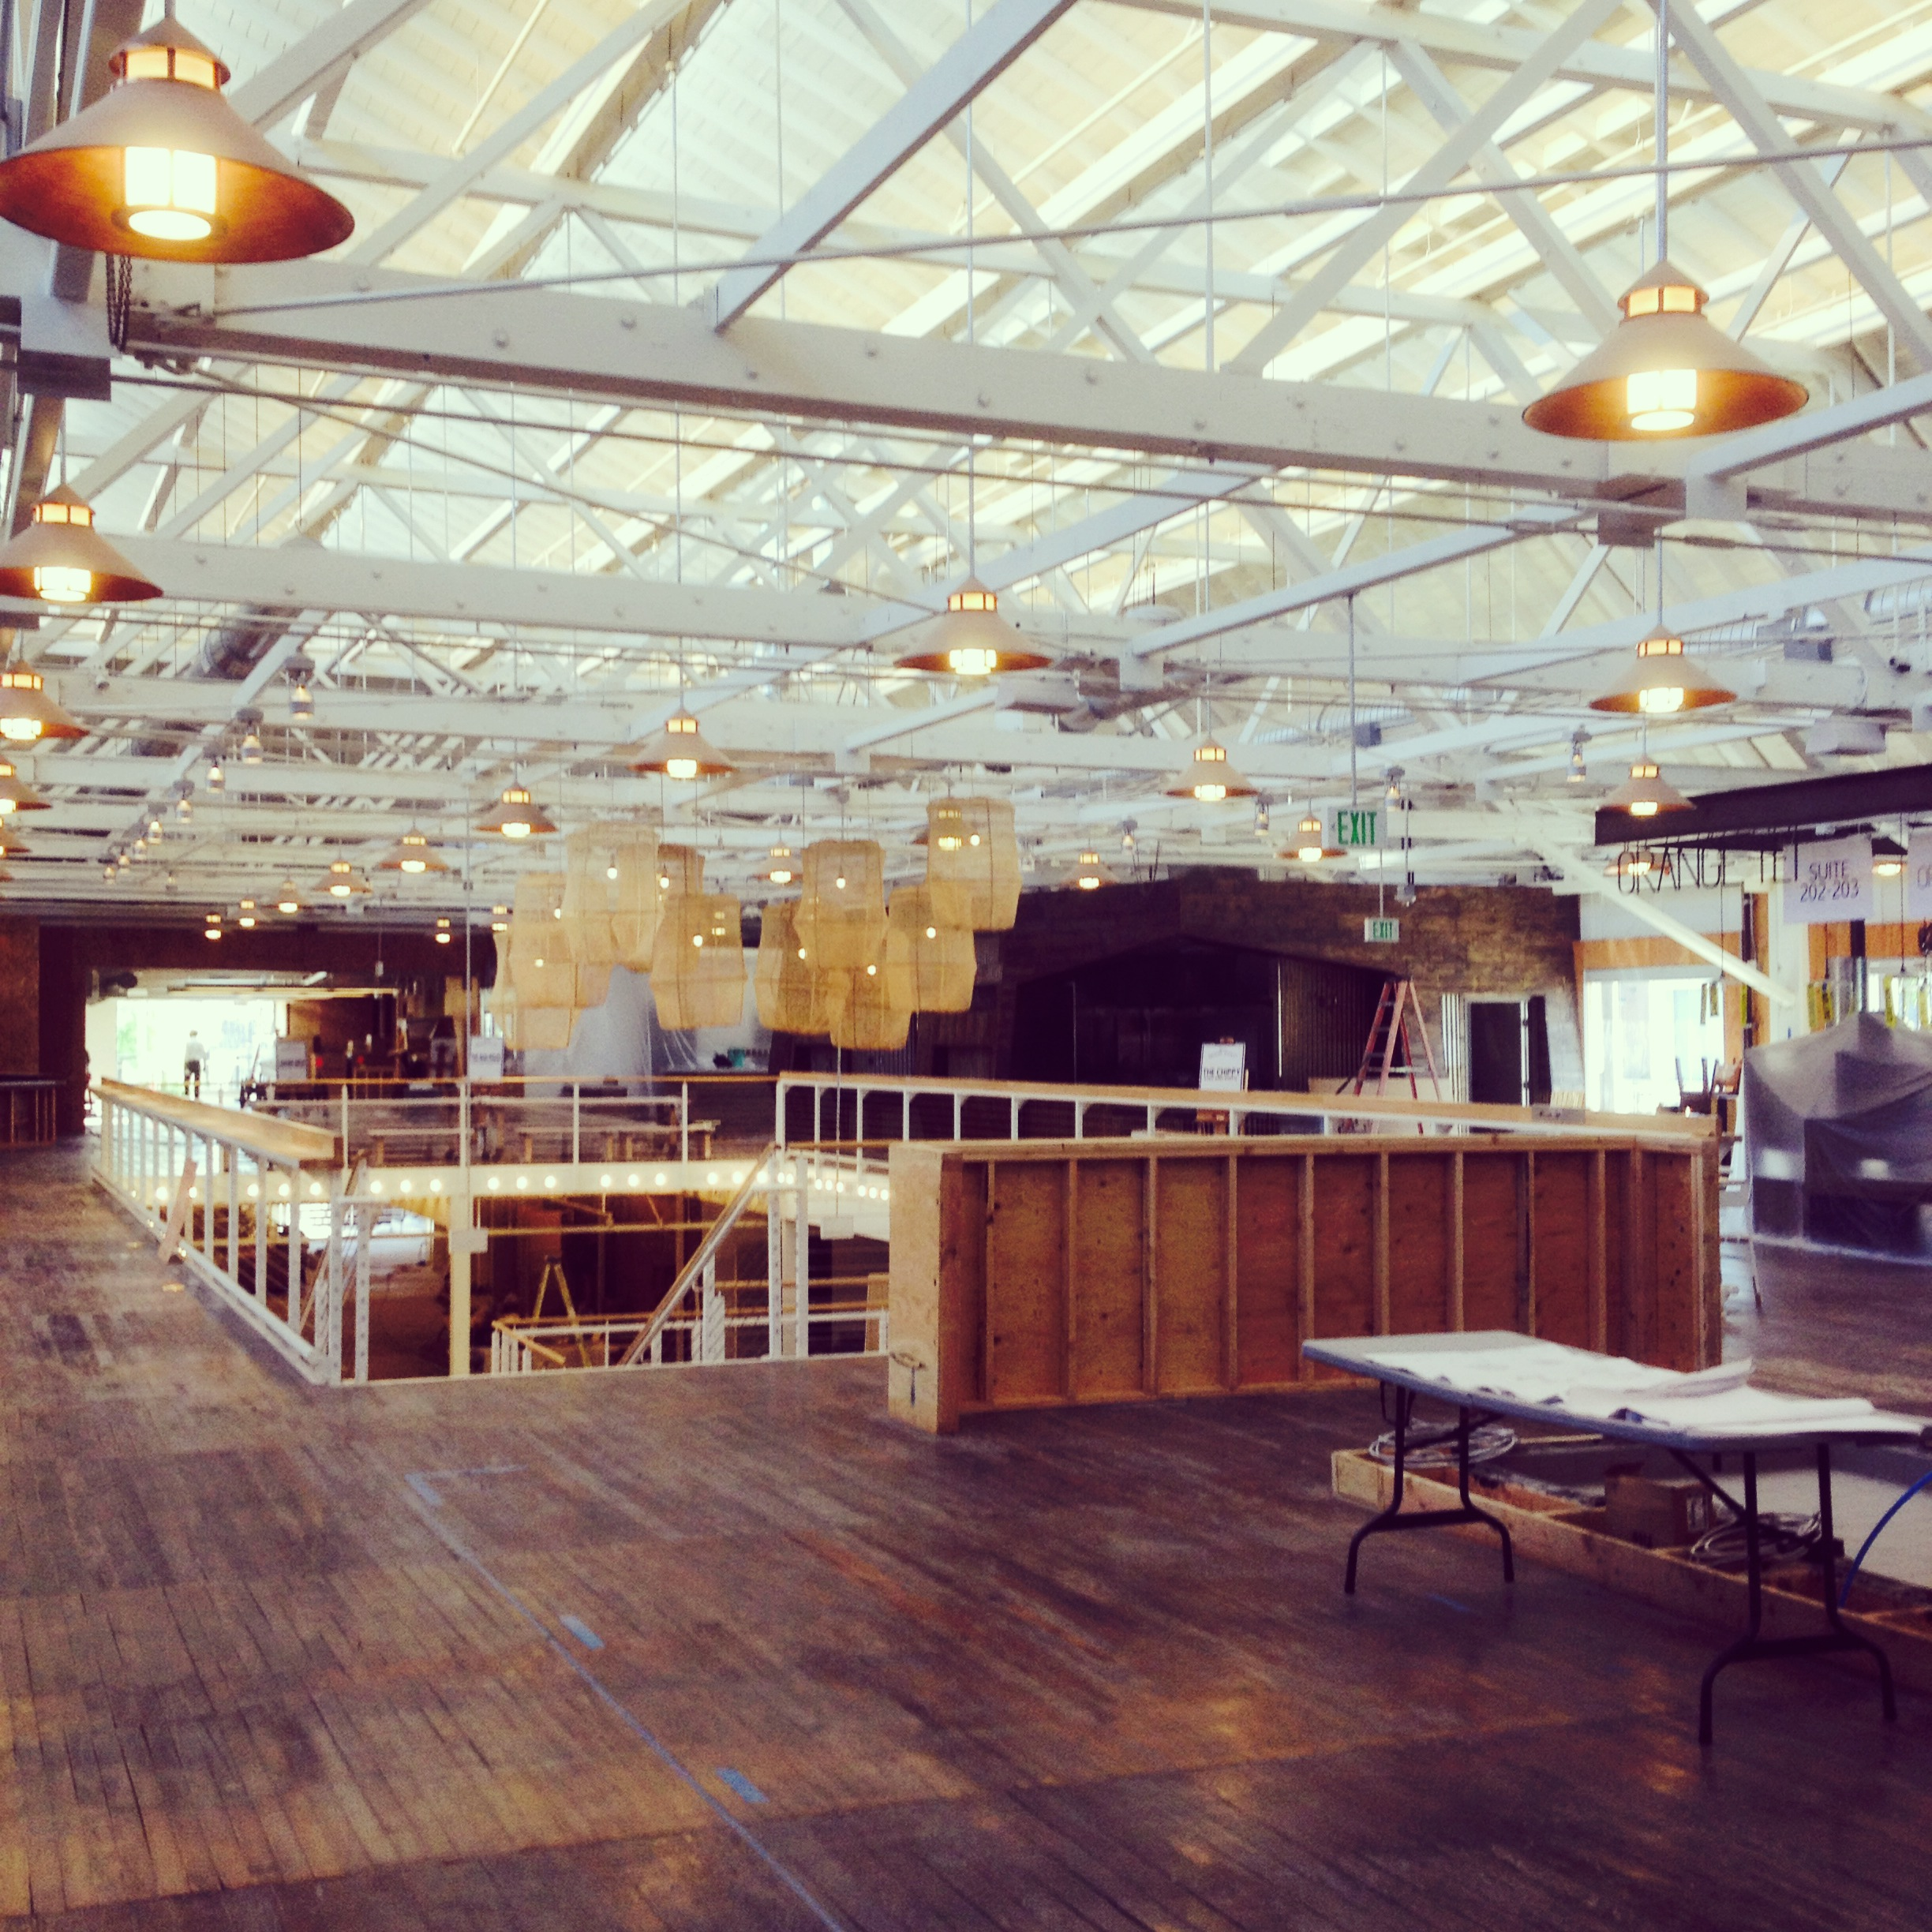 Inside The Packing House, before its May opening